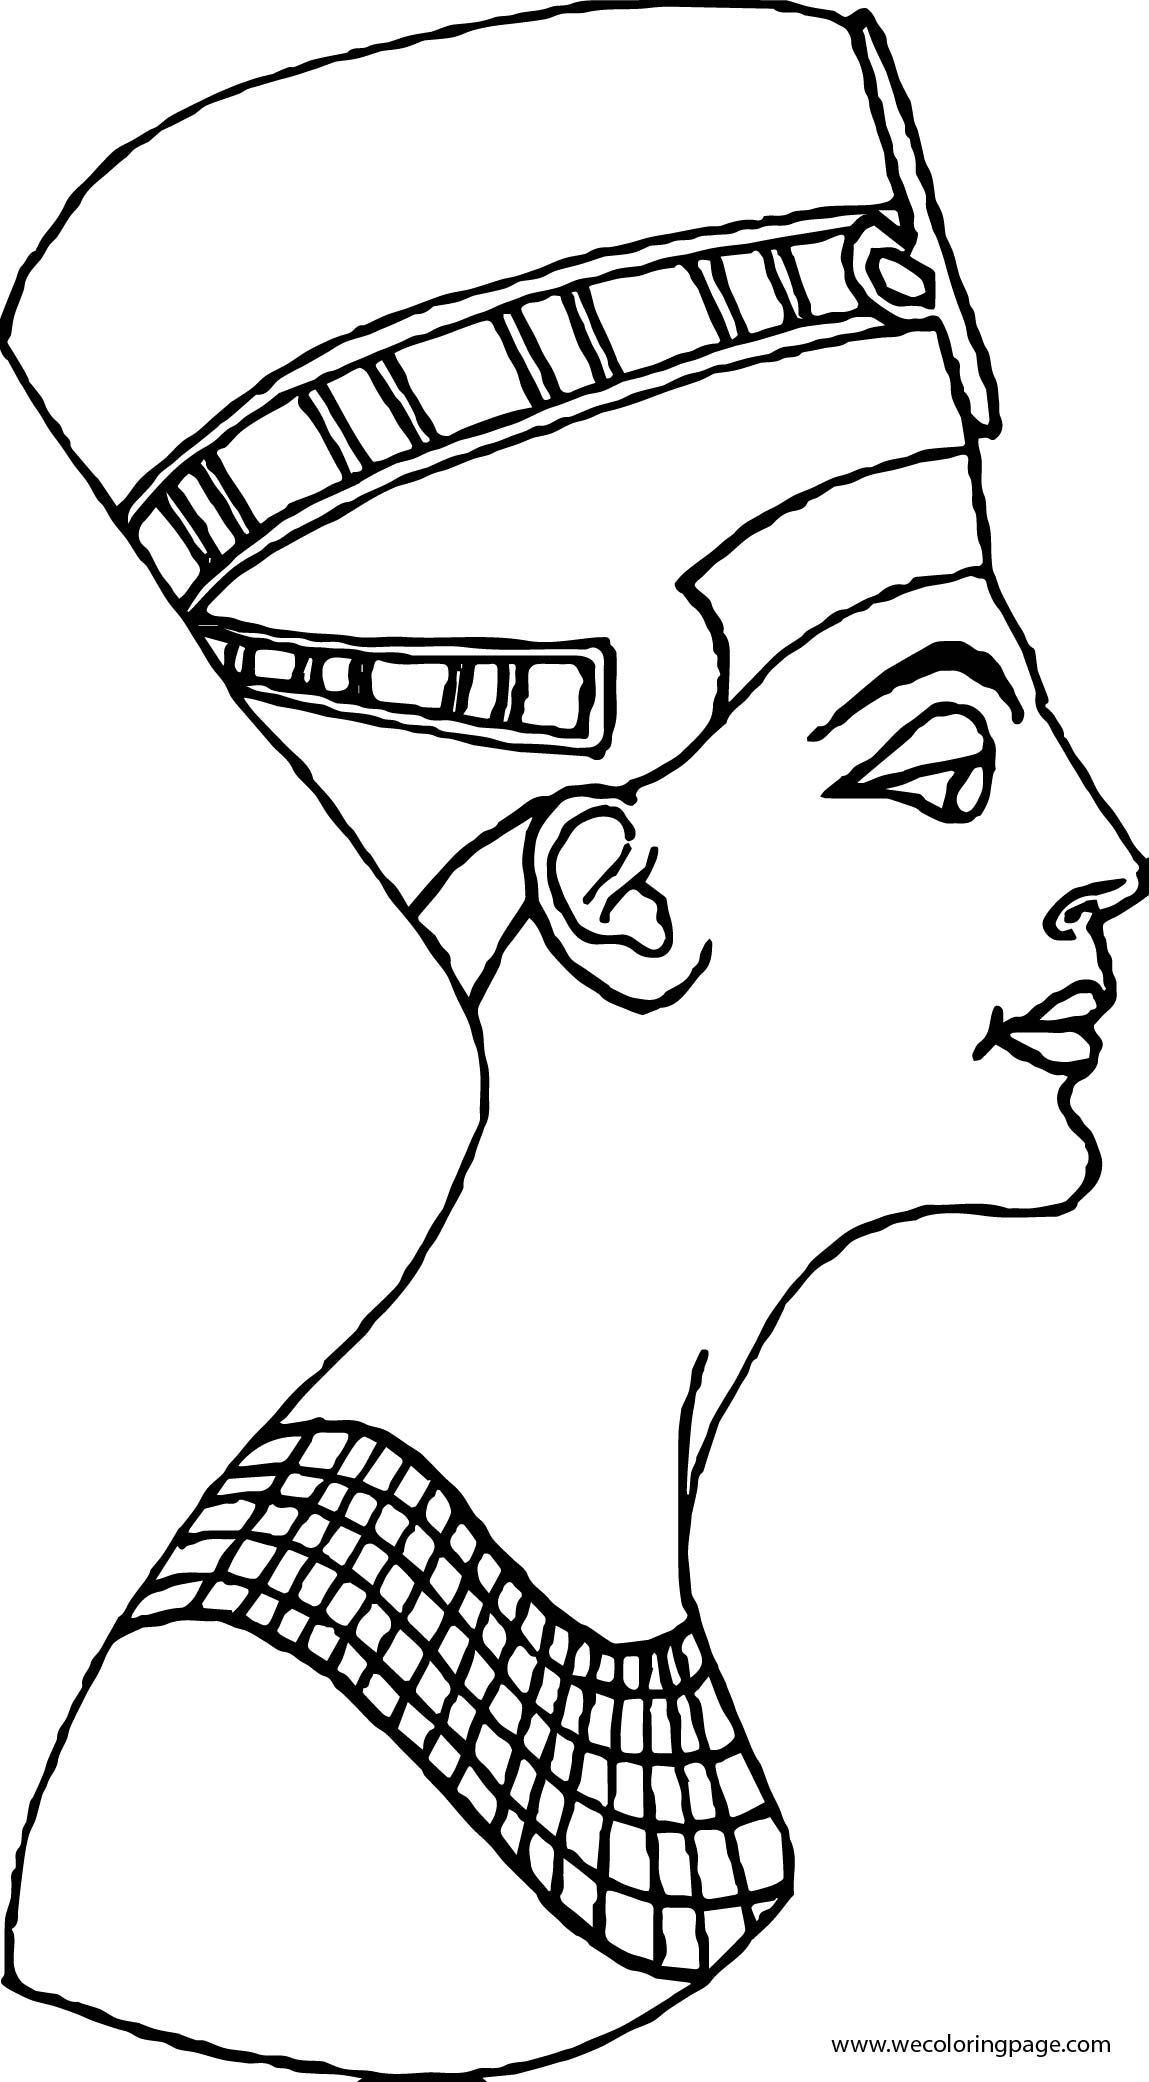 Plagues Of Egypt Side Face Coloring Page